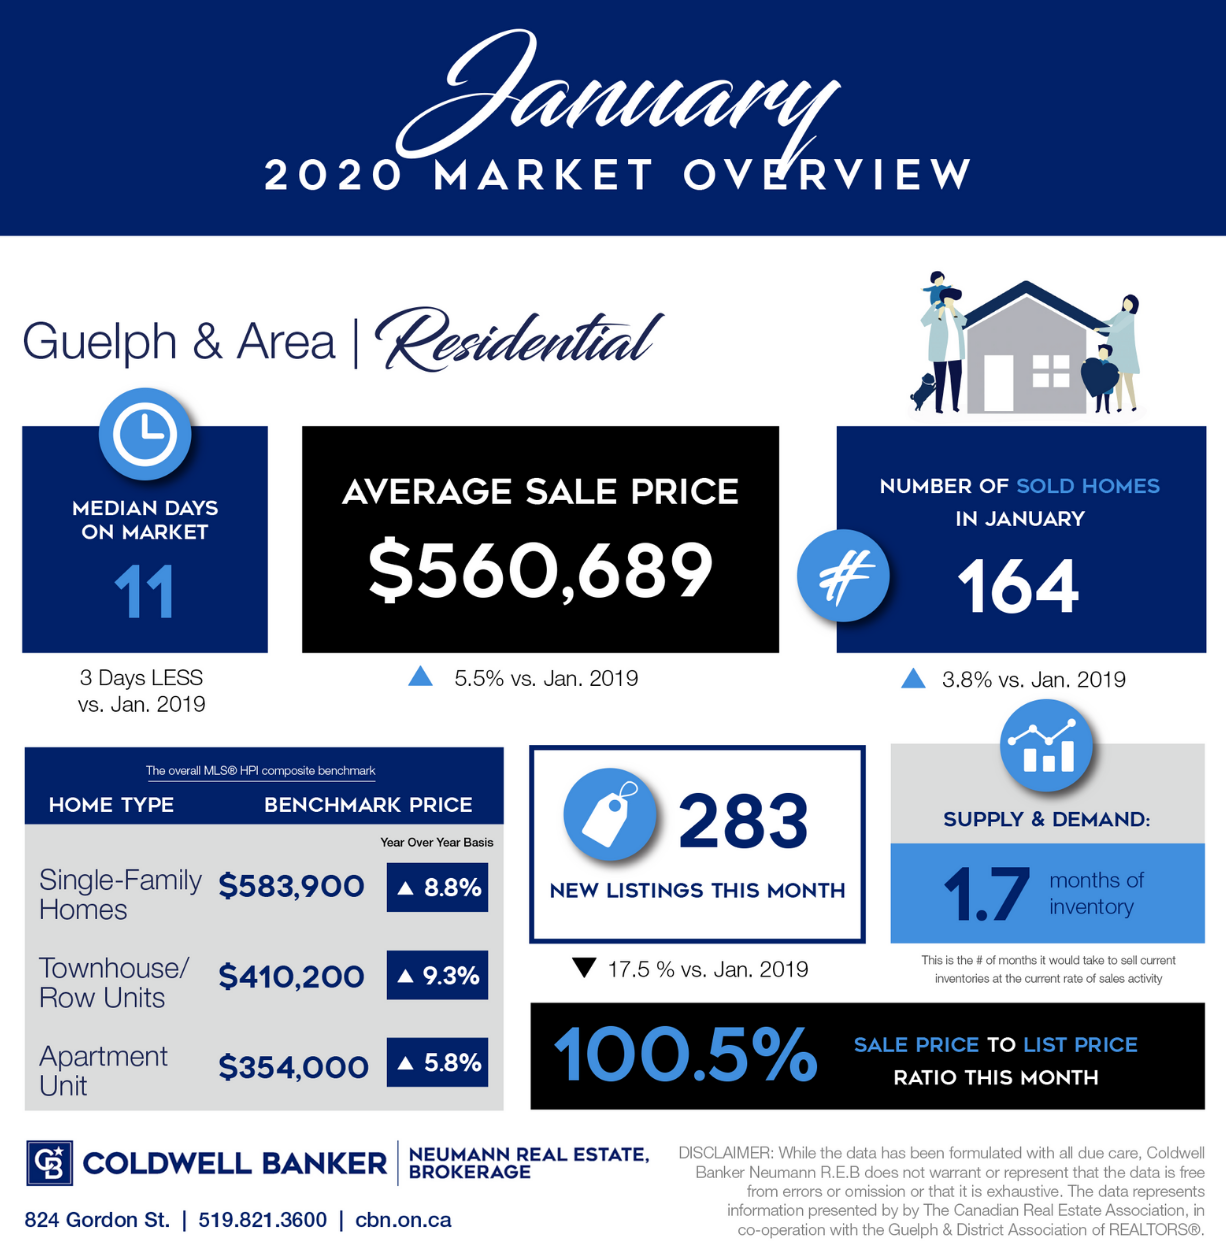 January 2020 Market Report for Guelph and area real estate.